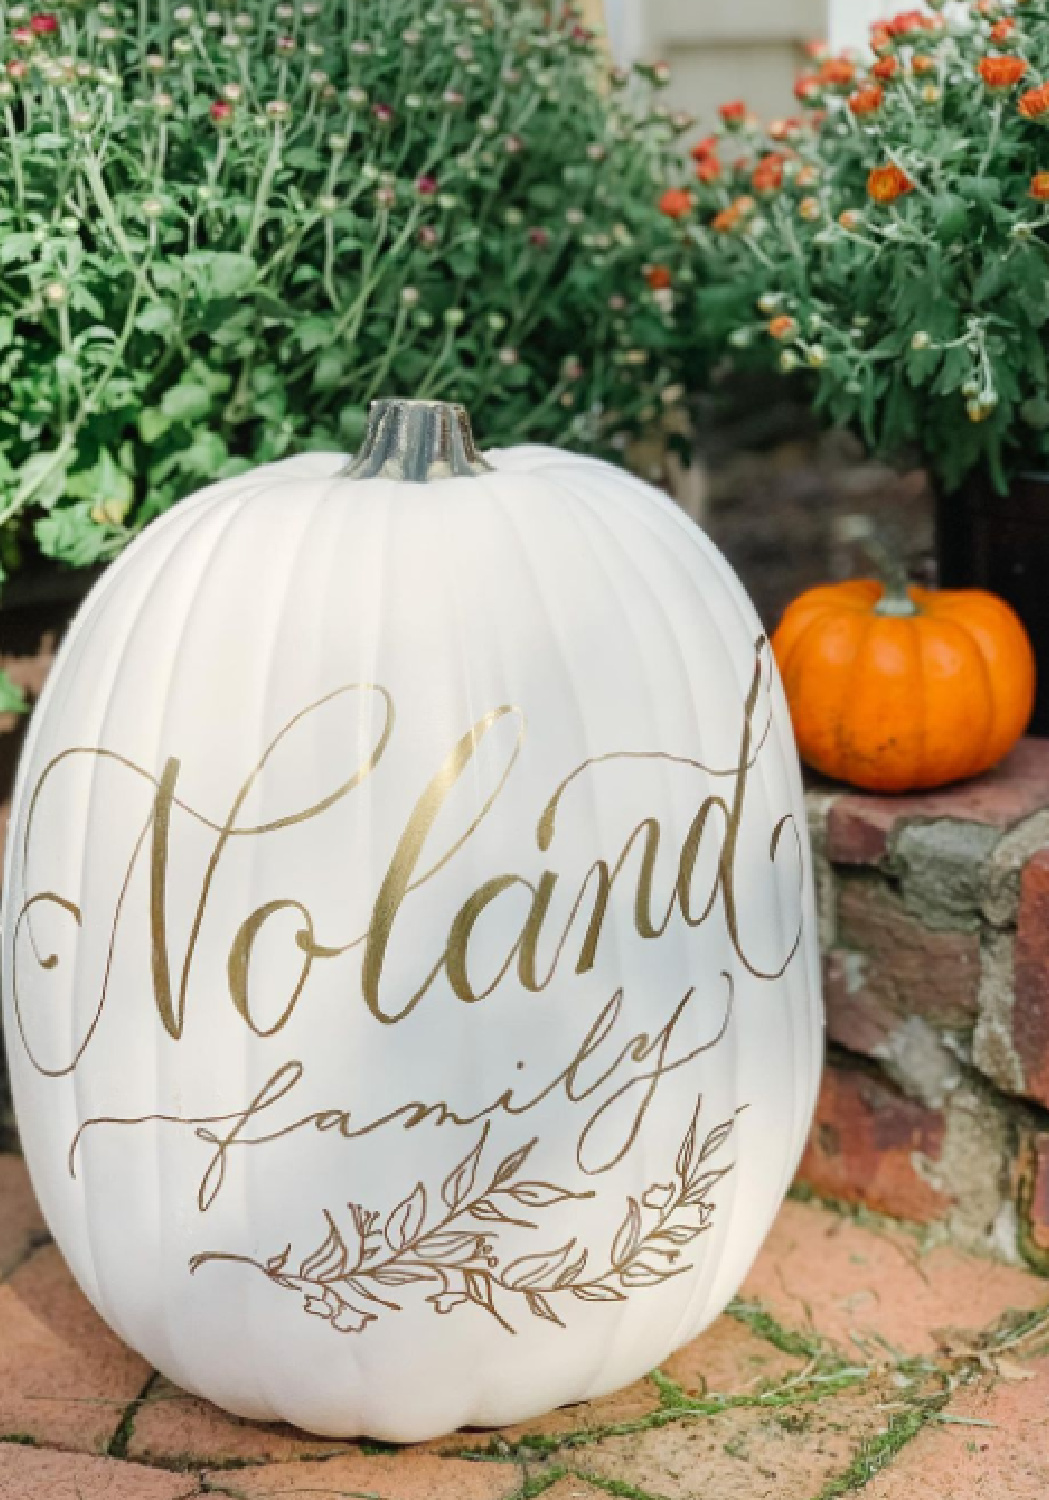 White pumpkins with calligraphy handlettering in gold for fall decor - #pennedbyalice. #handlettering #paintedpumpkins